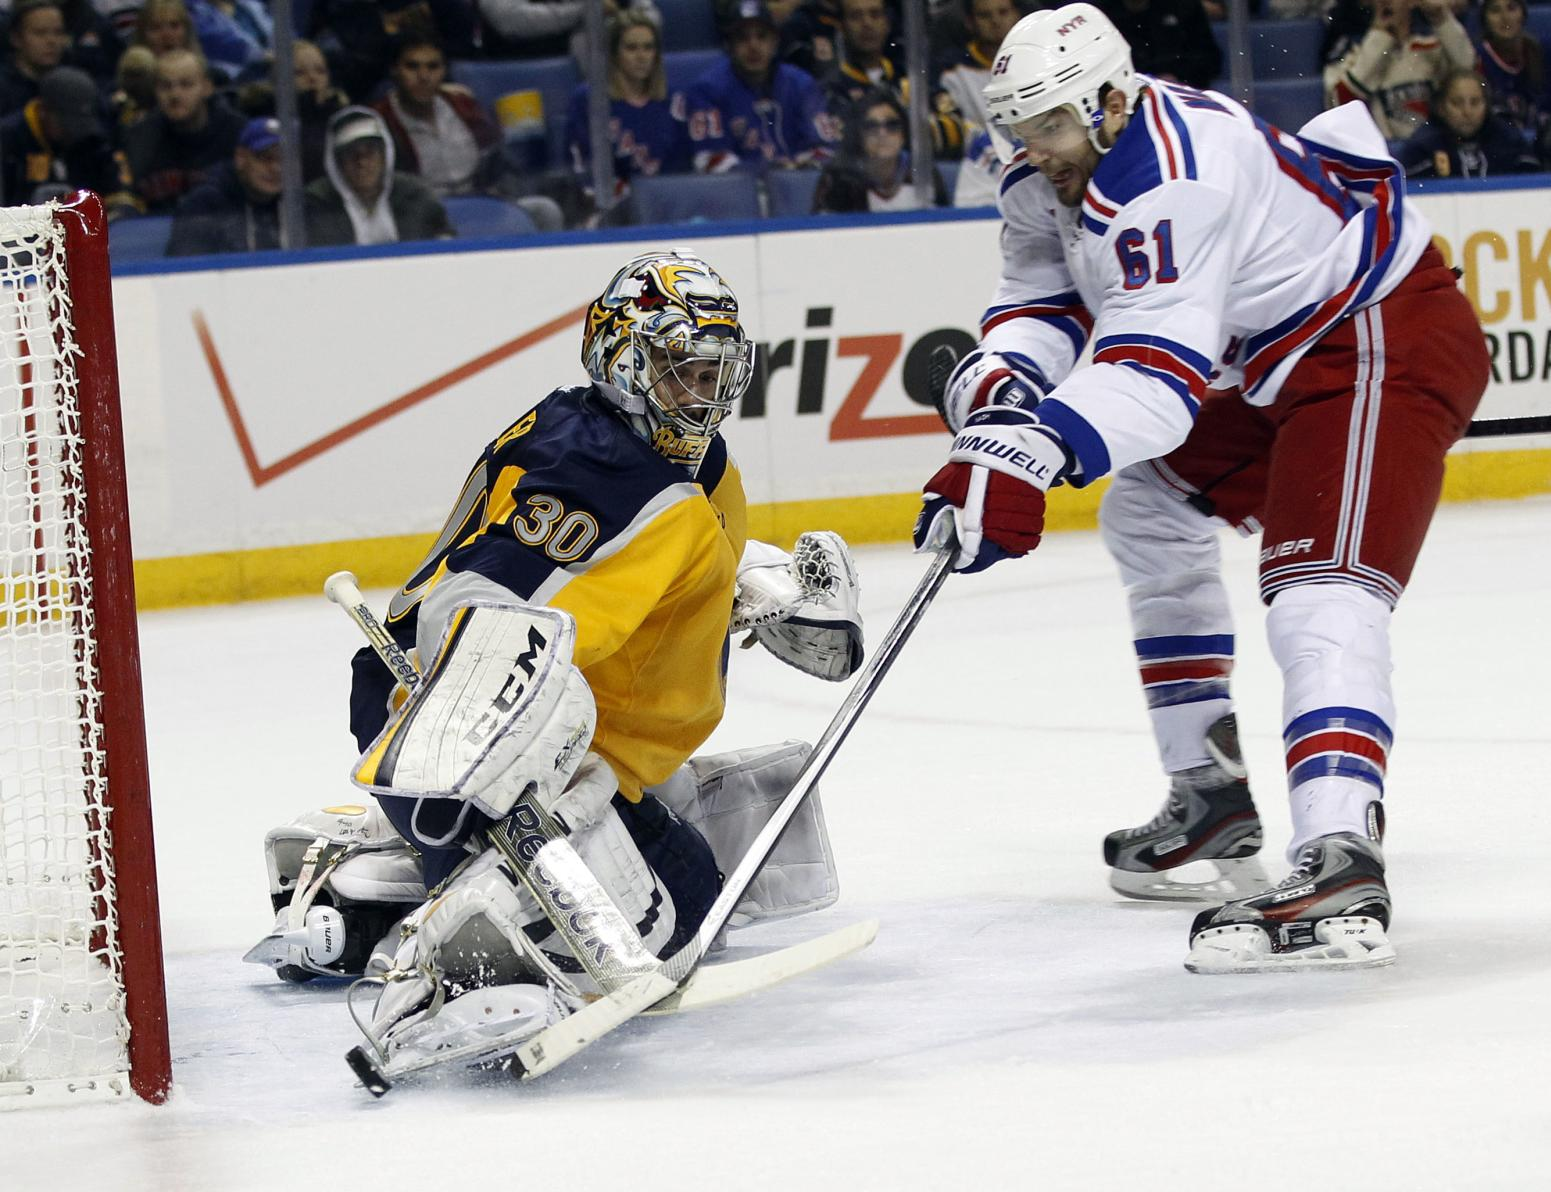 NHL: New York Rangers at Buffalo Sabres